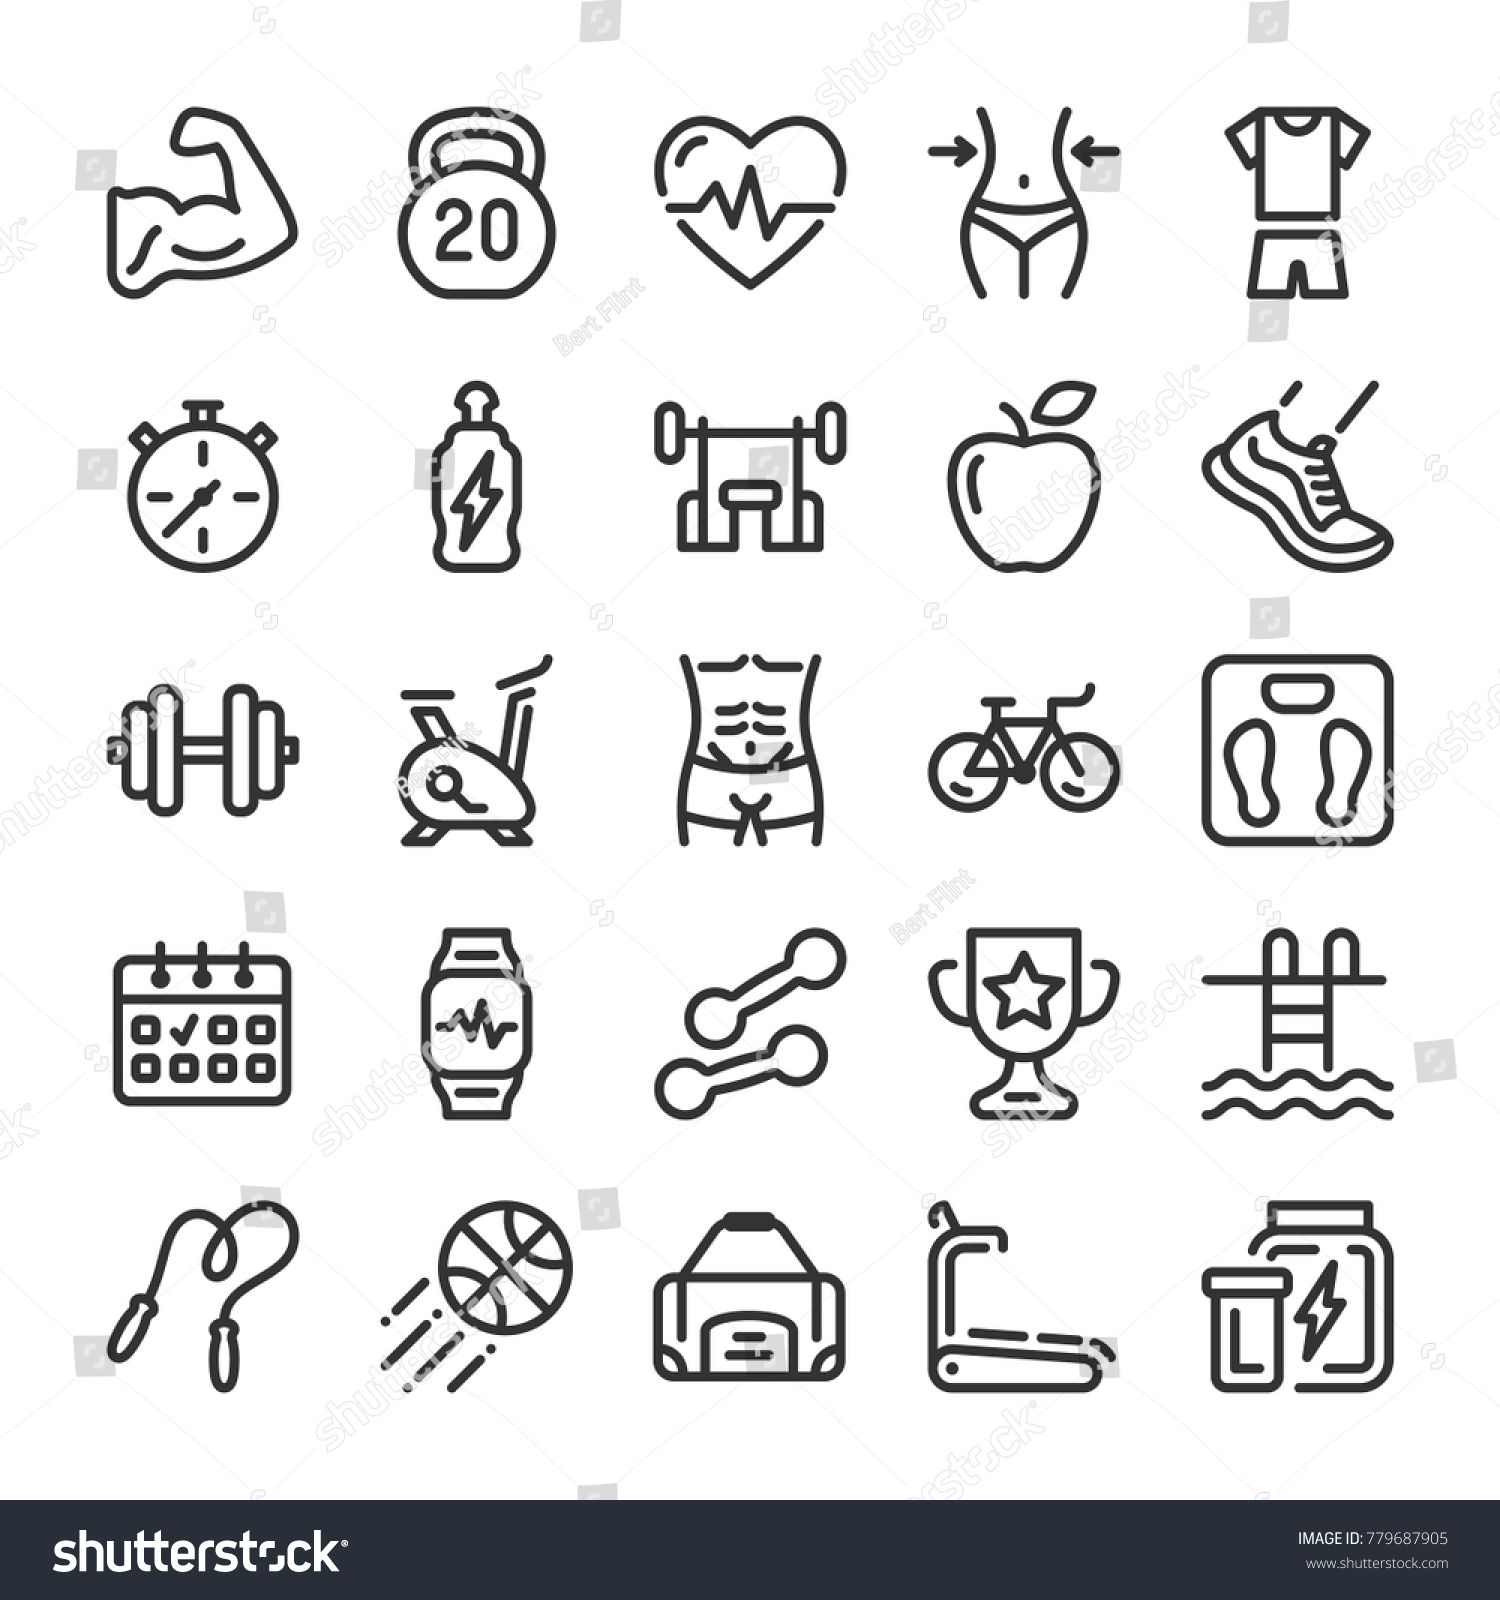 Fitness and sport icons set. Healthy lifestyle symbols